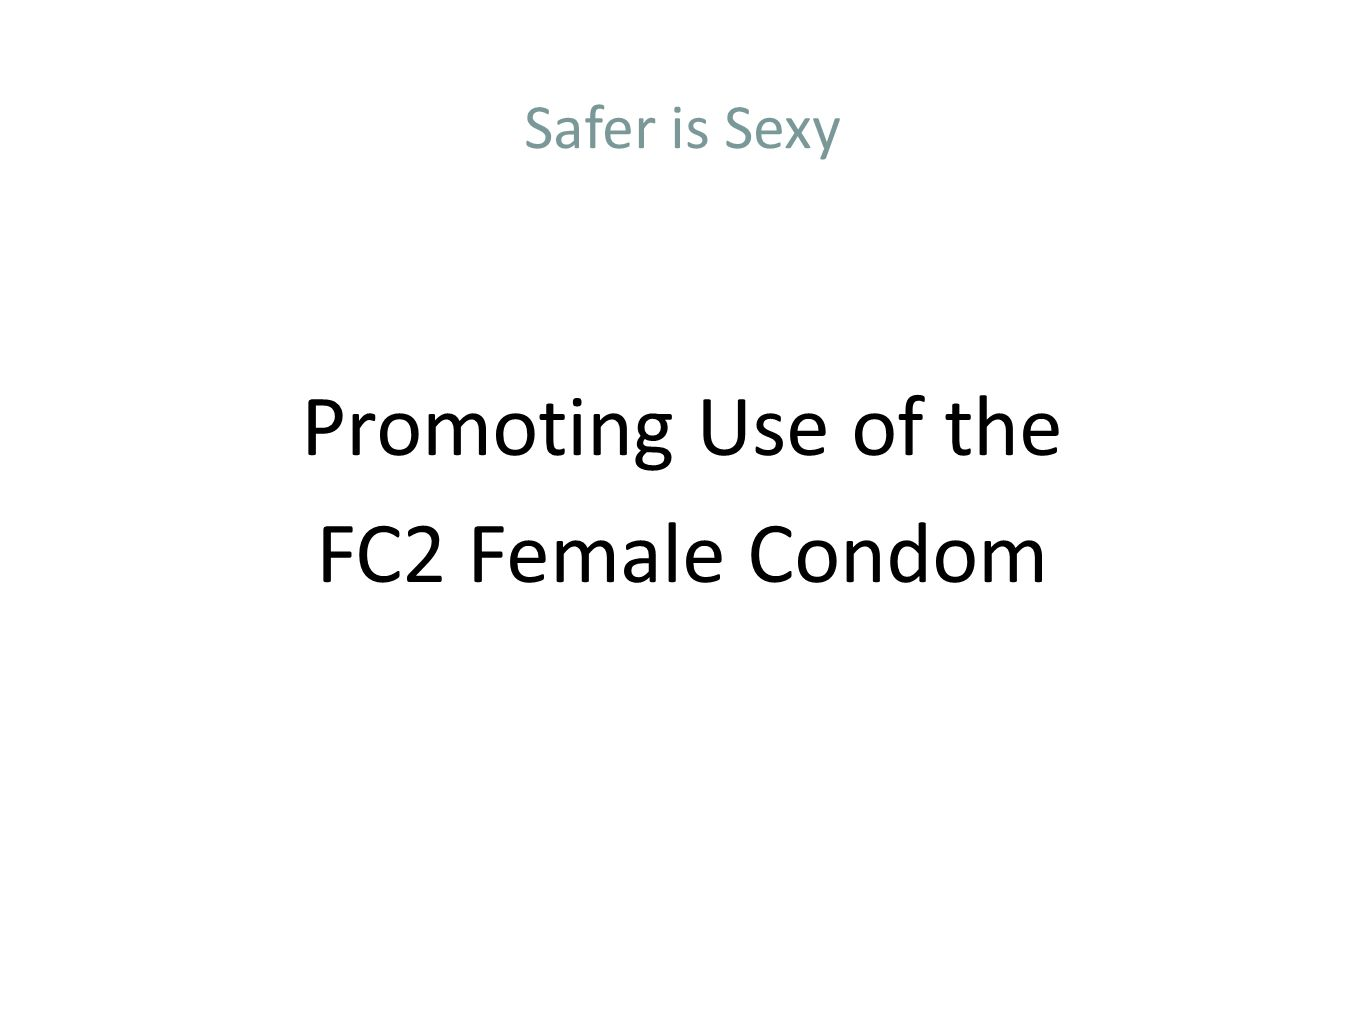 Promoting Use of the FC2 Female Condom